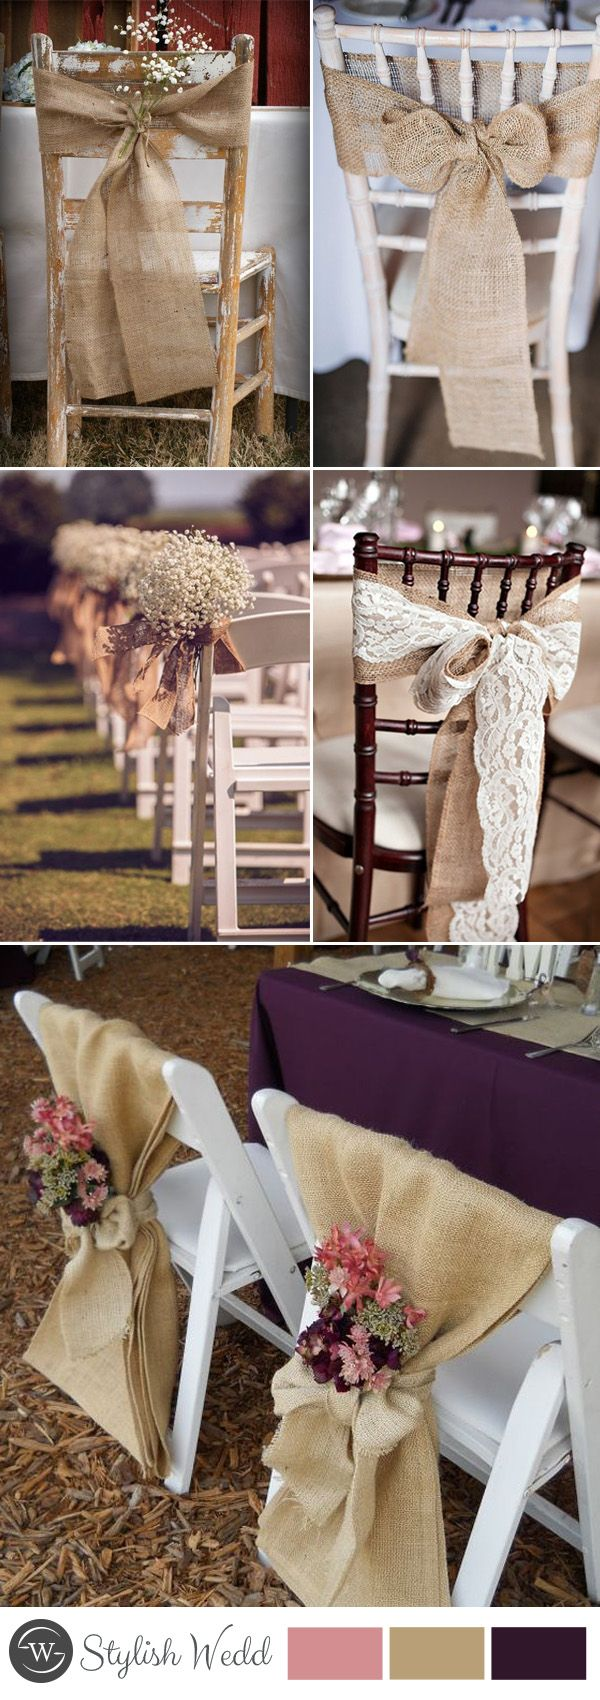 Wedding ceremony chair - 50 Great Ways To Decorate Your Weddding Chair